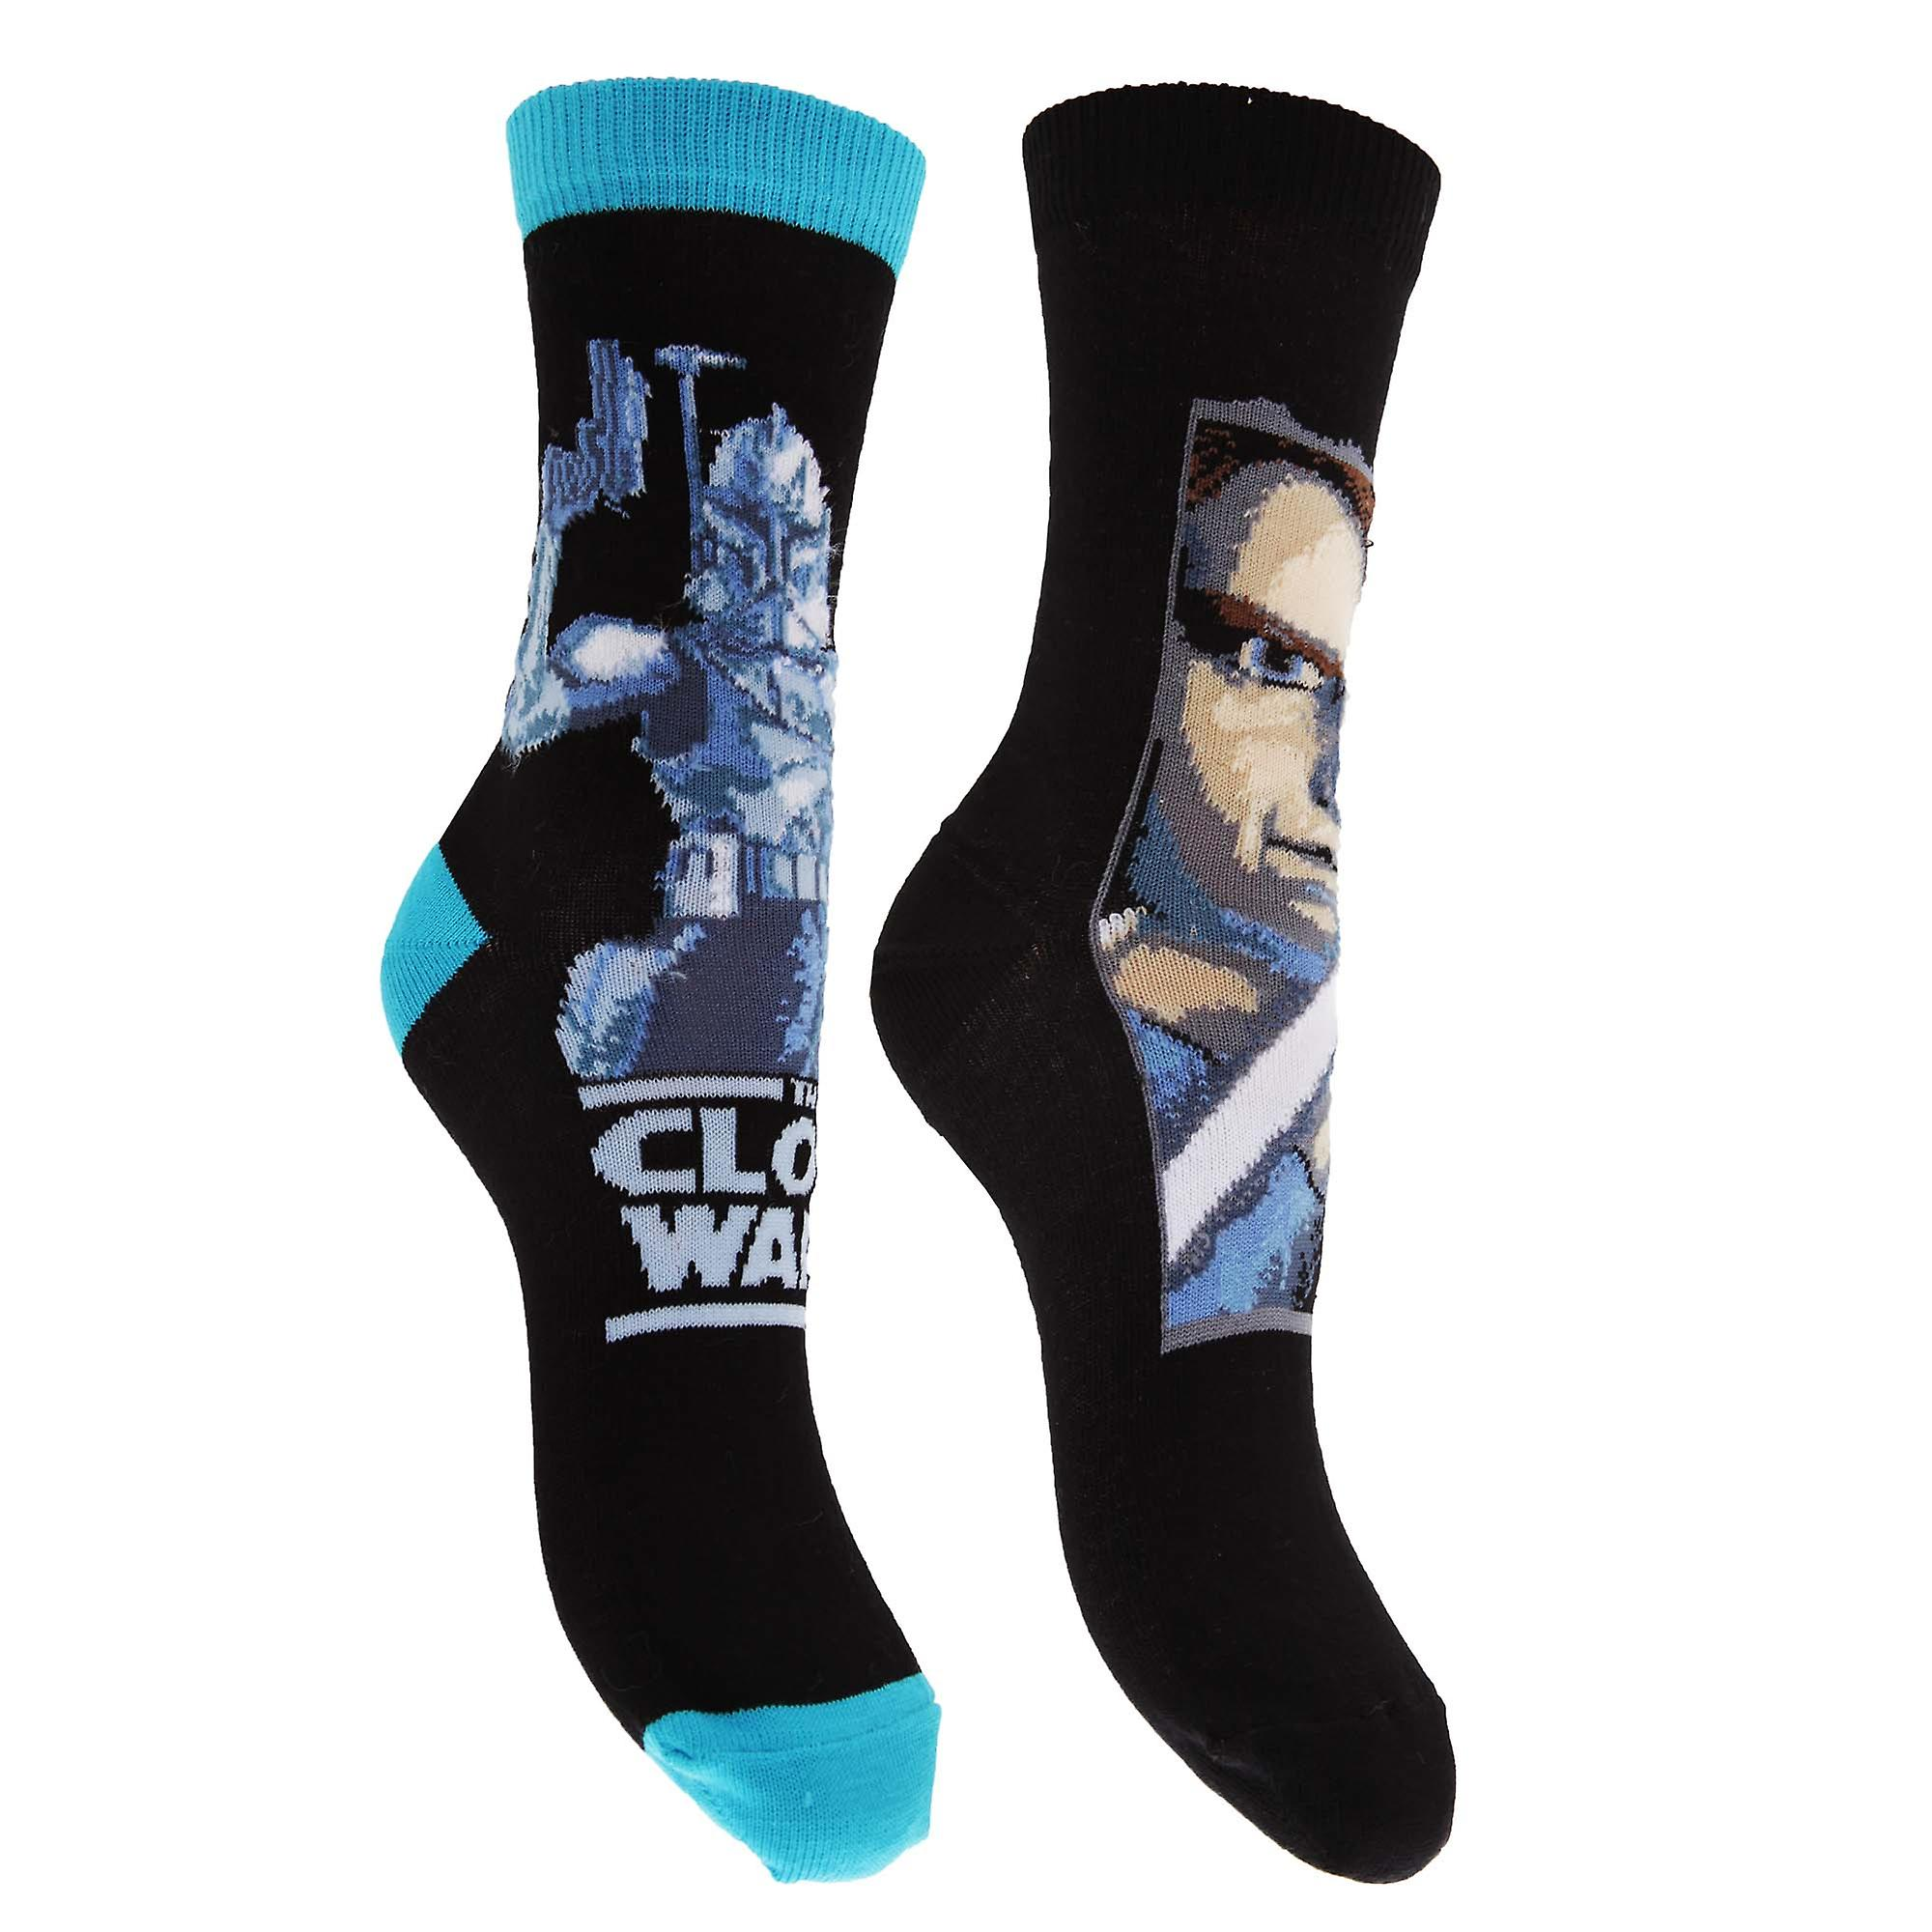 Star Wars Childrens Boys Cotton Rich Clone Wars Design Socks (Pack Of 2)